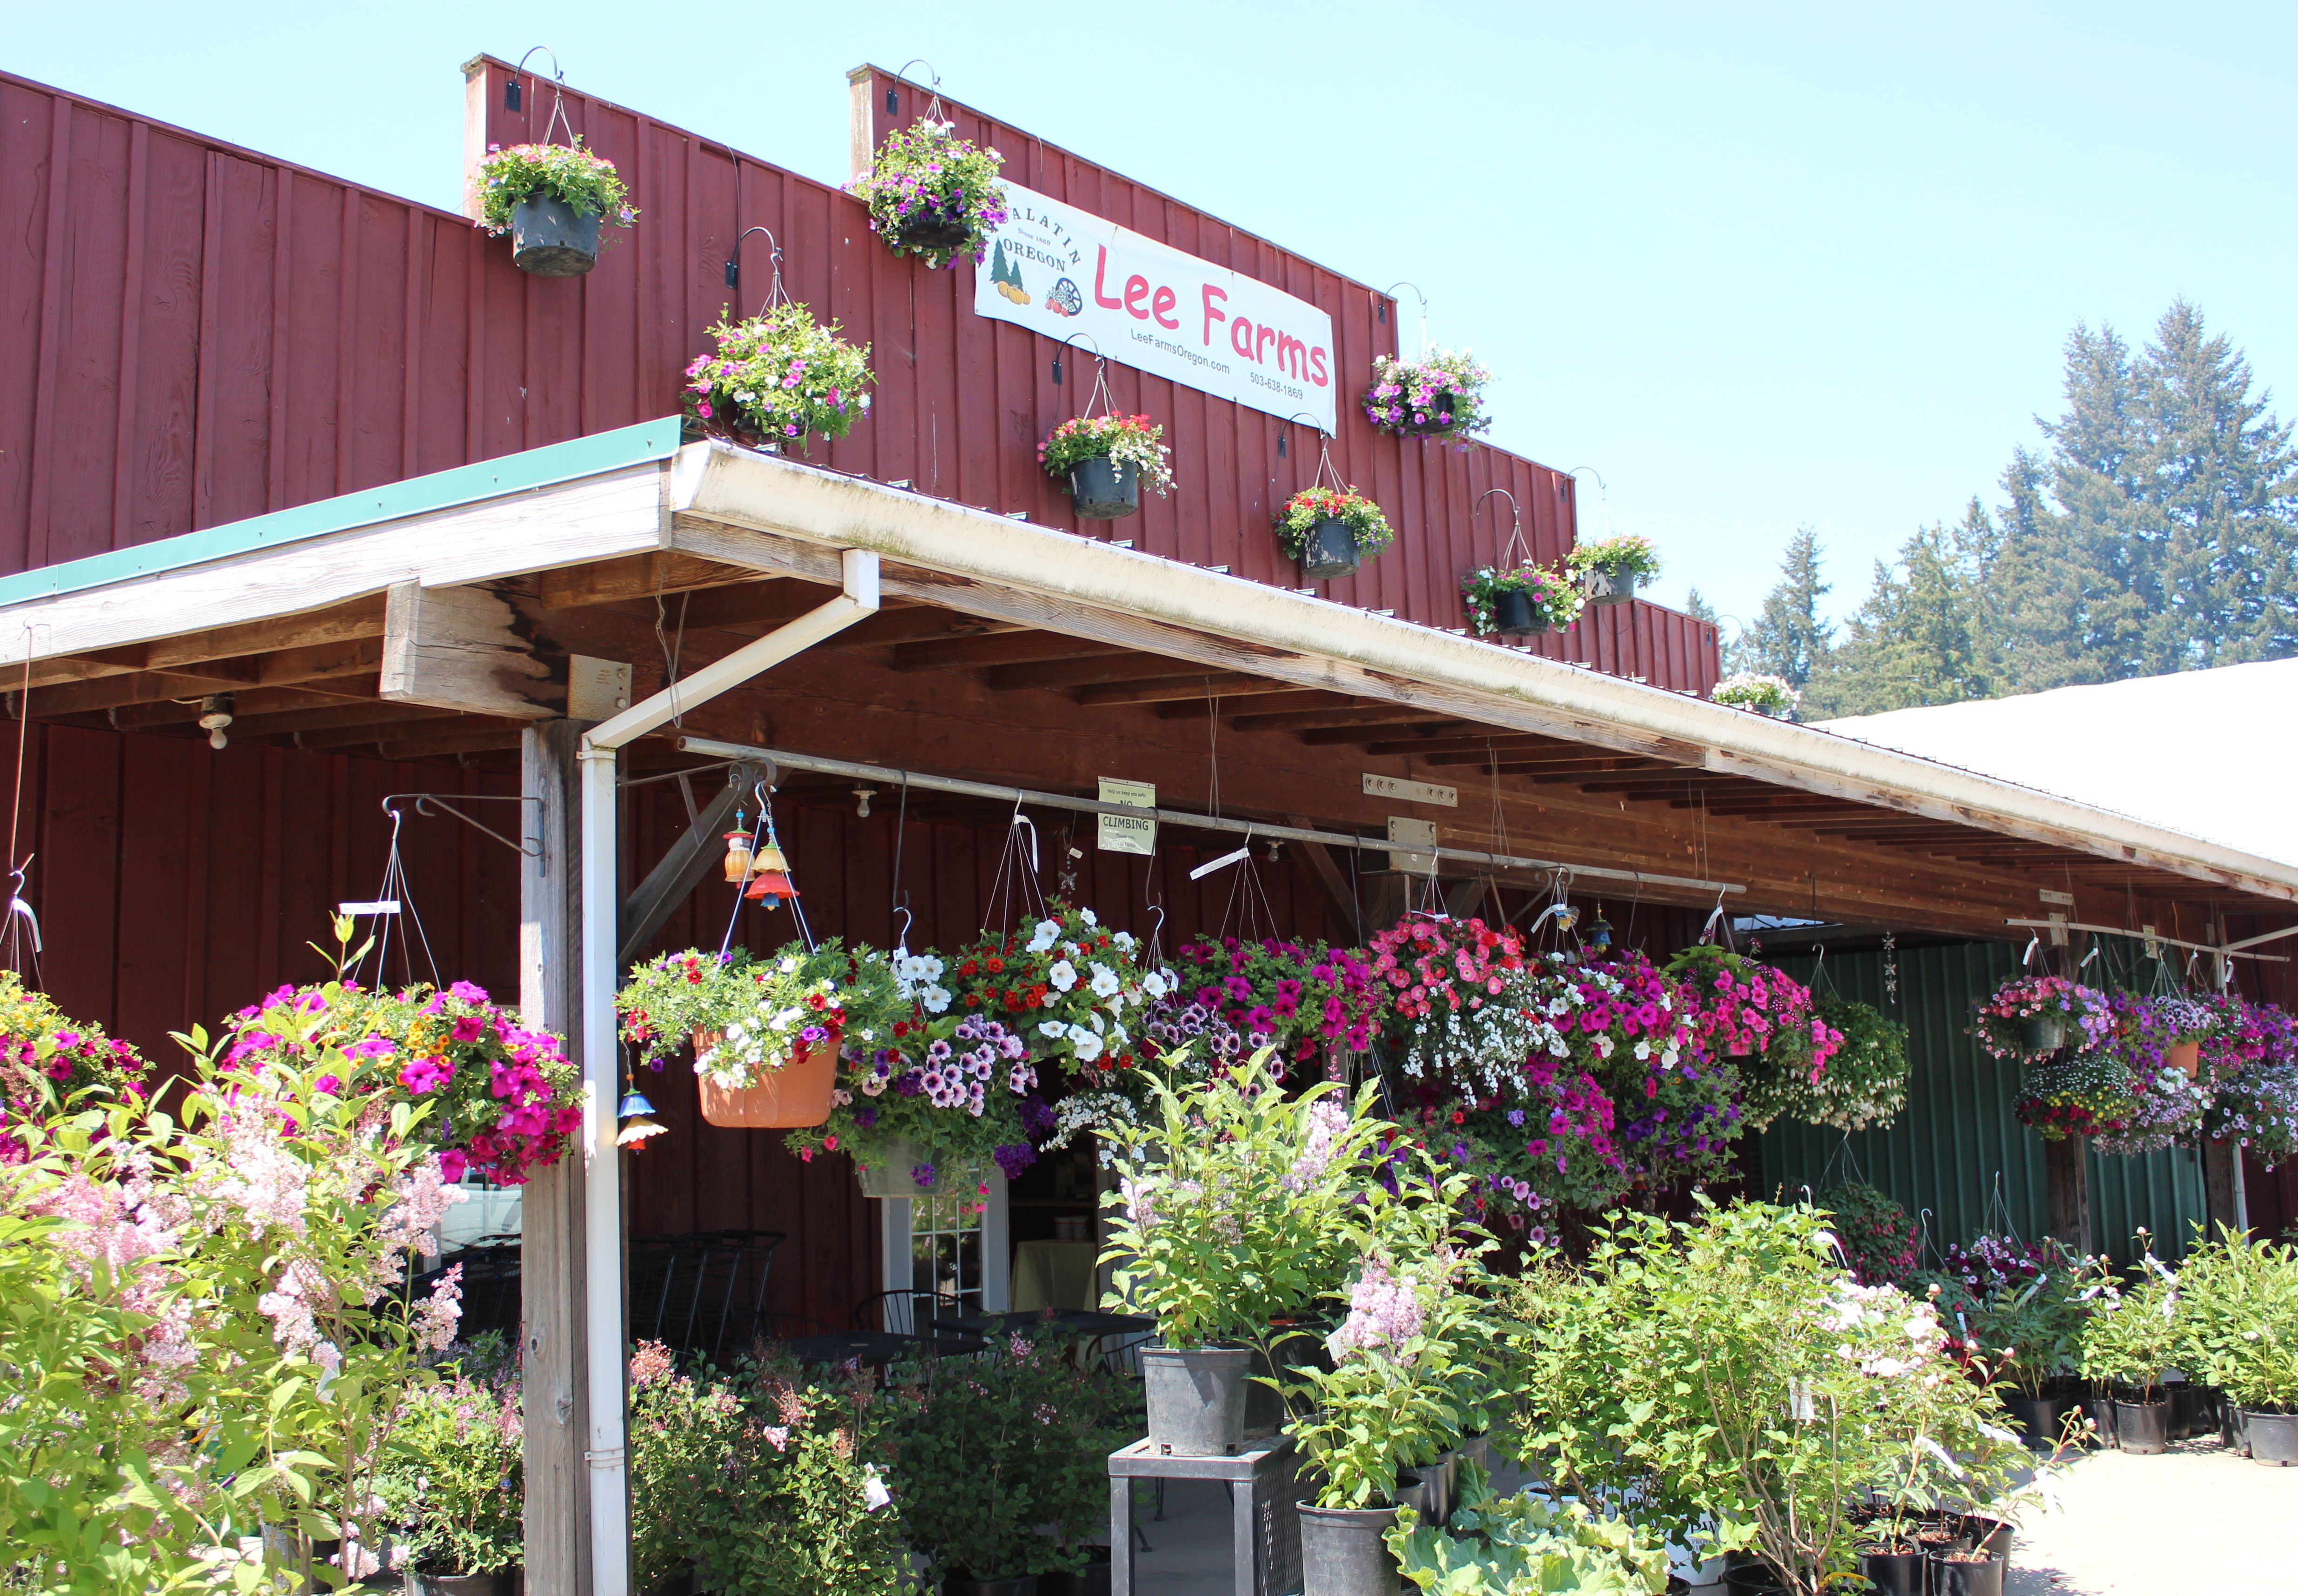 Lee Farms In Tualatin Oregon They Have The Best U Pick Strawberries I Have Ever Tasted Oregon Travel Best Places To Live Tualatin Oregon